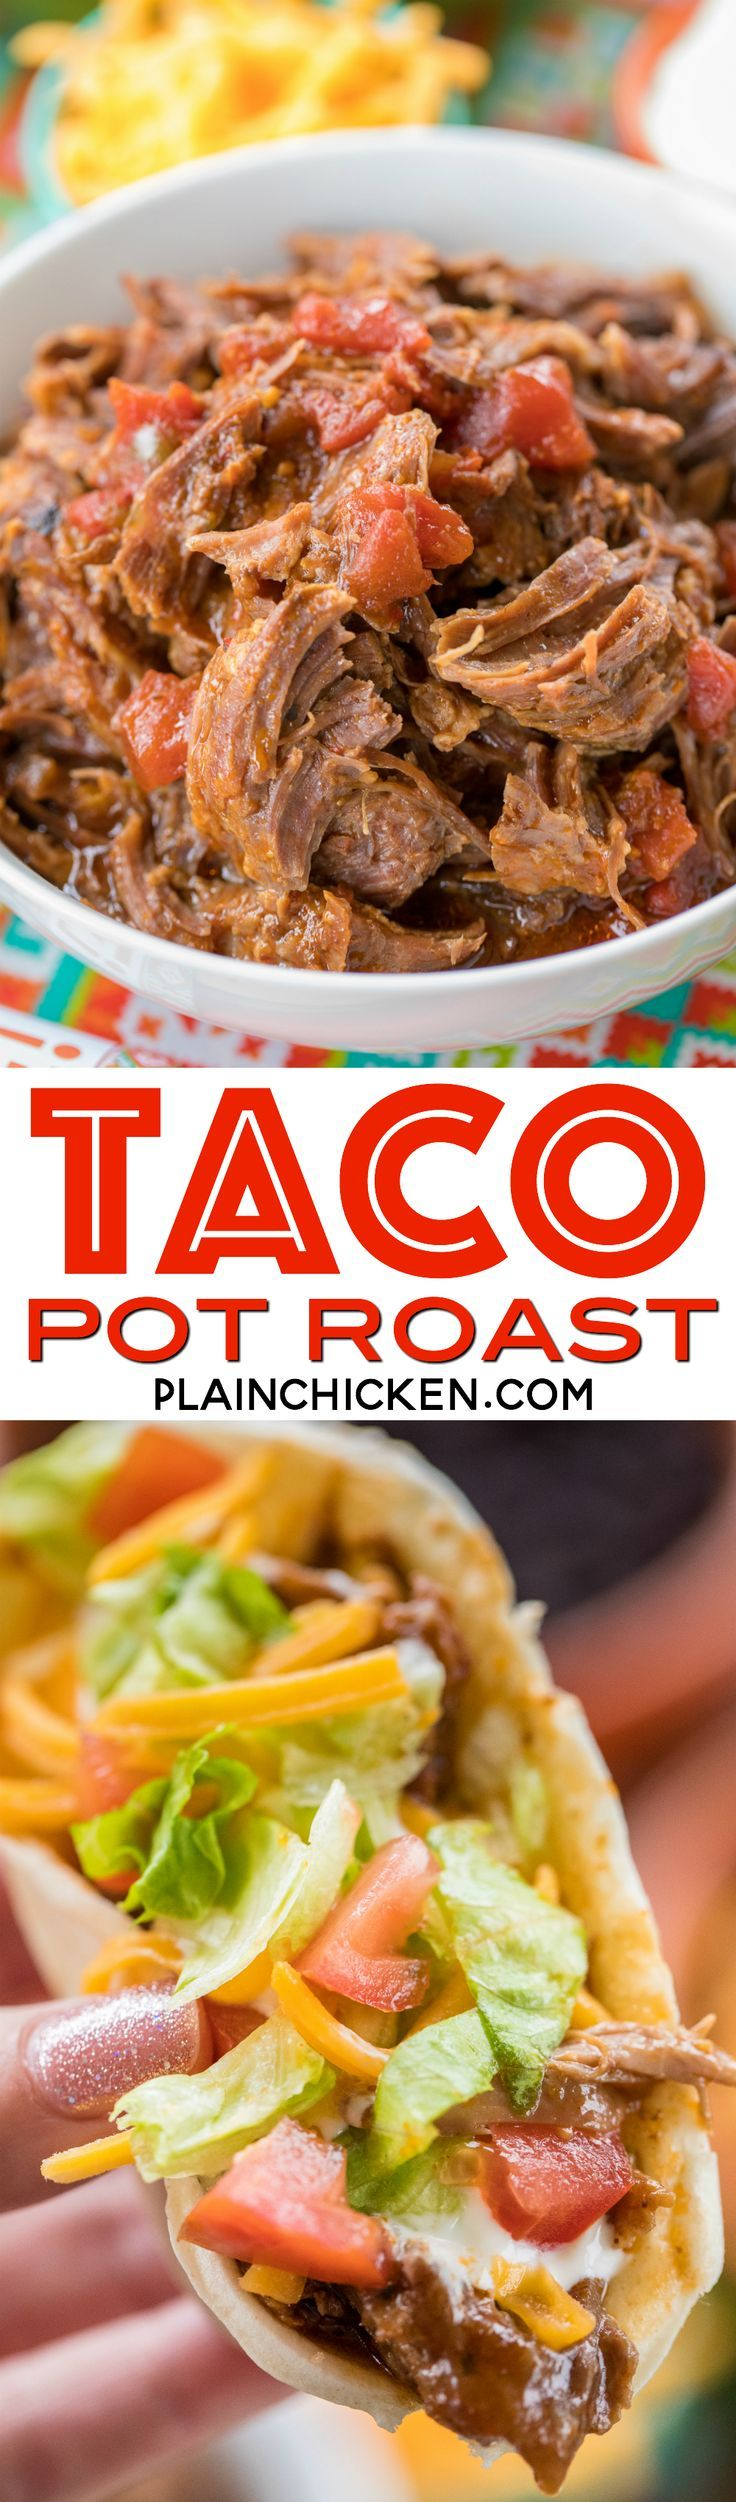 Slow Cooker Taco Pot Roast - shredded beef tacos. Only 5 ingredients - pot roast, au jus mix, taco seasoning, tomato juice and diced tomatoes and green chiles. Can serve shredded pot roast over rice with beans for a burrito bowl or in tortilla for shredde